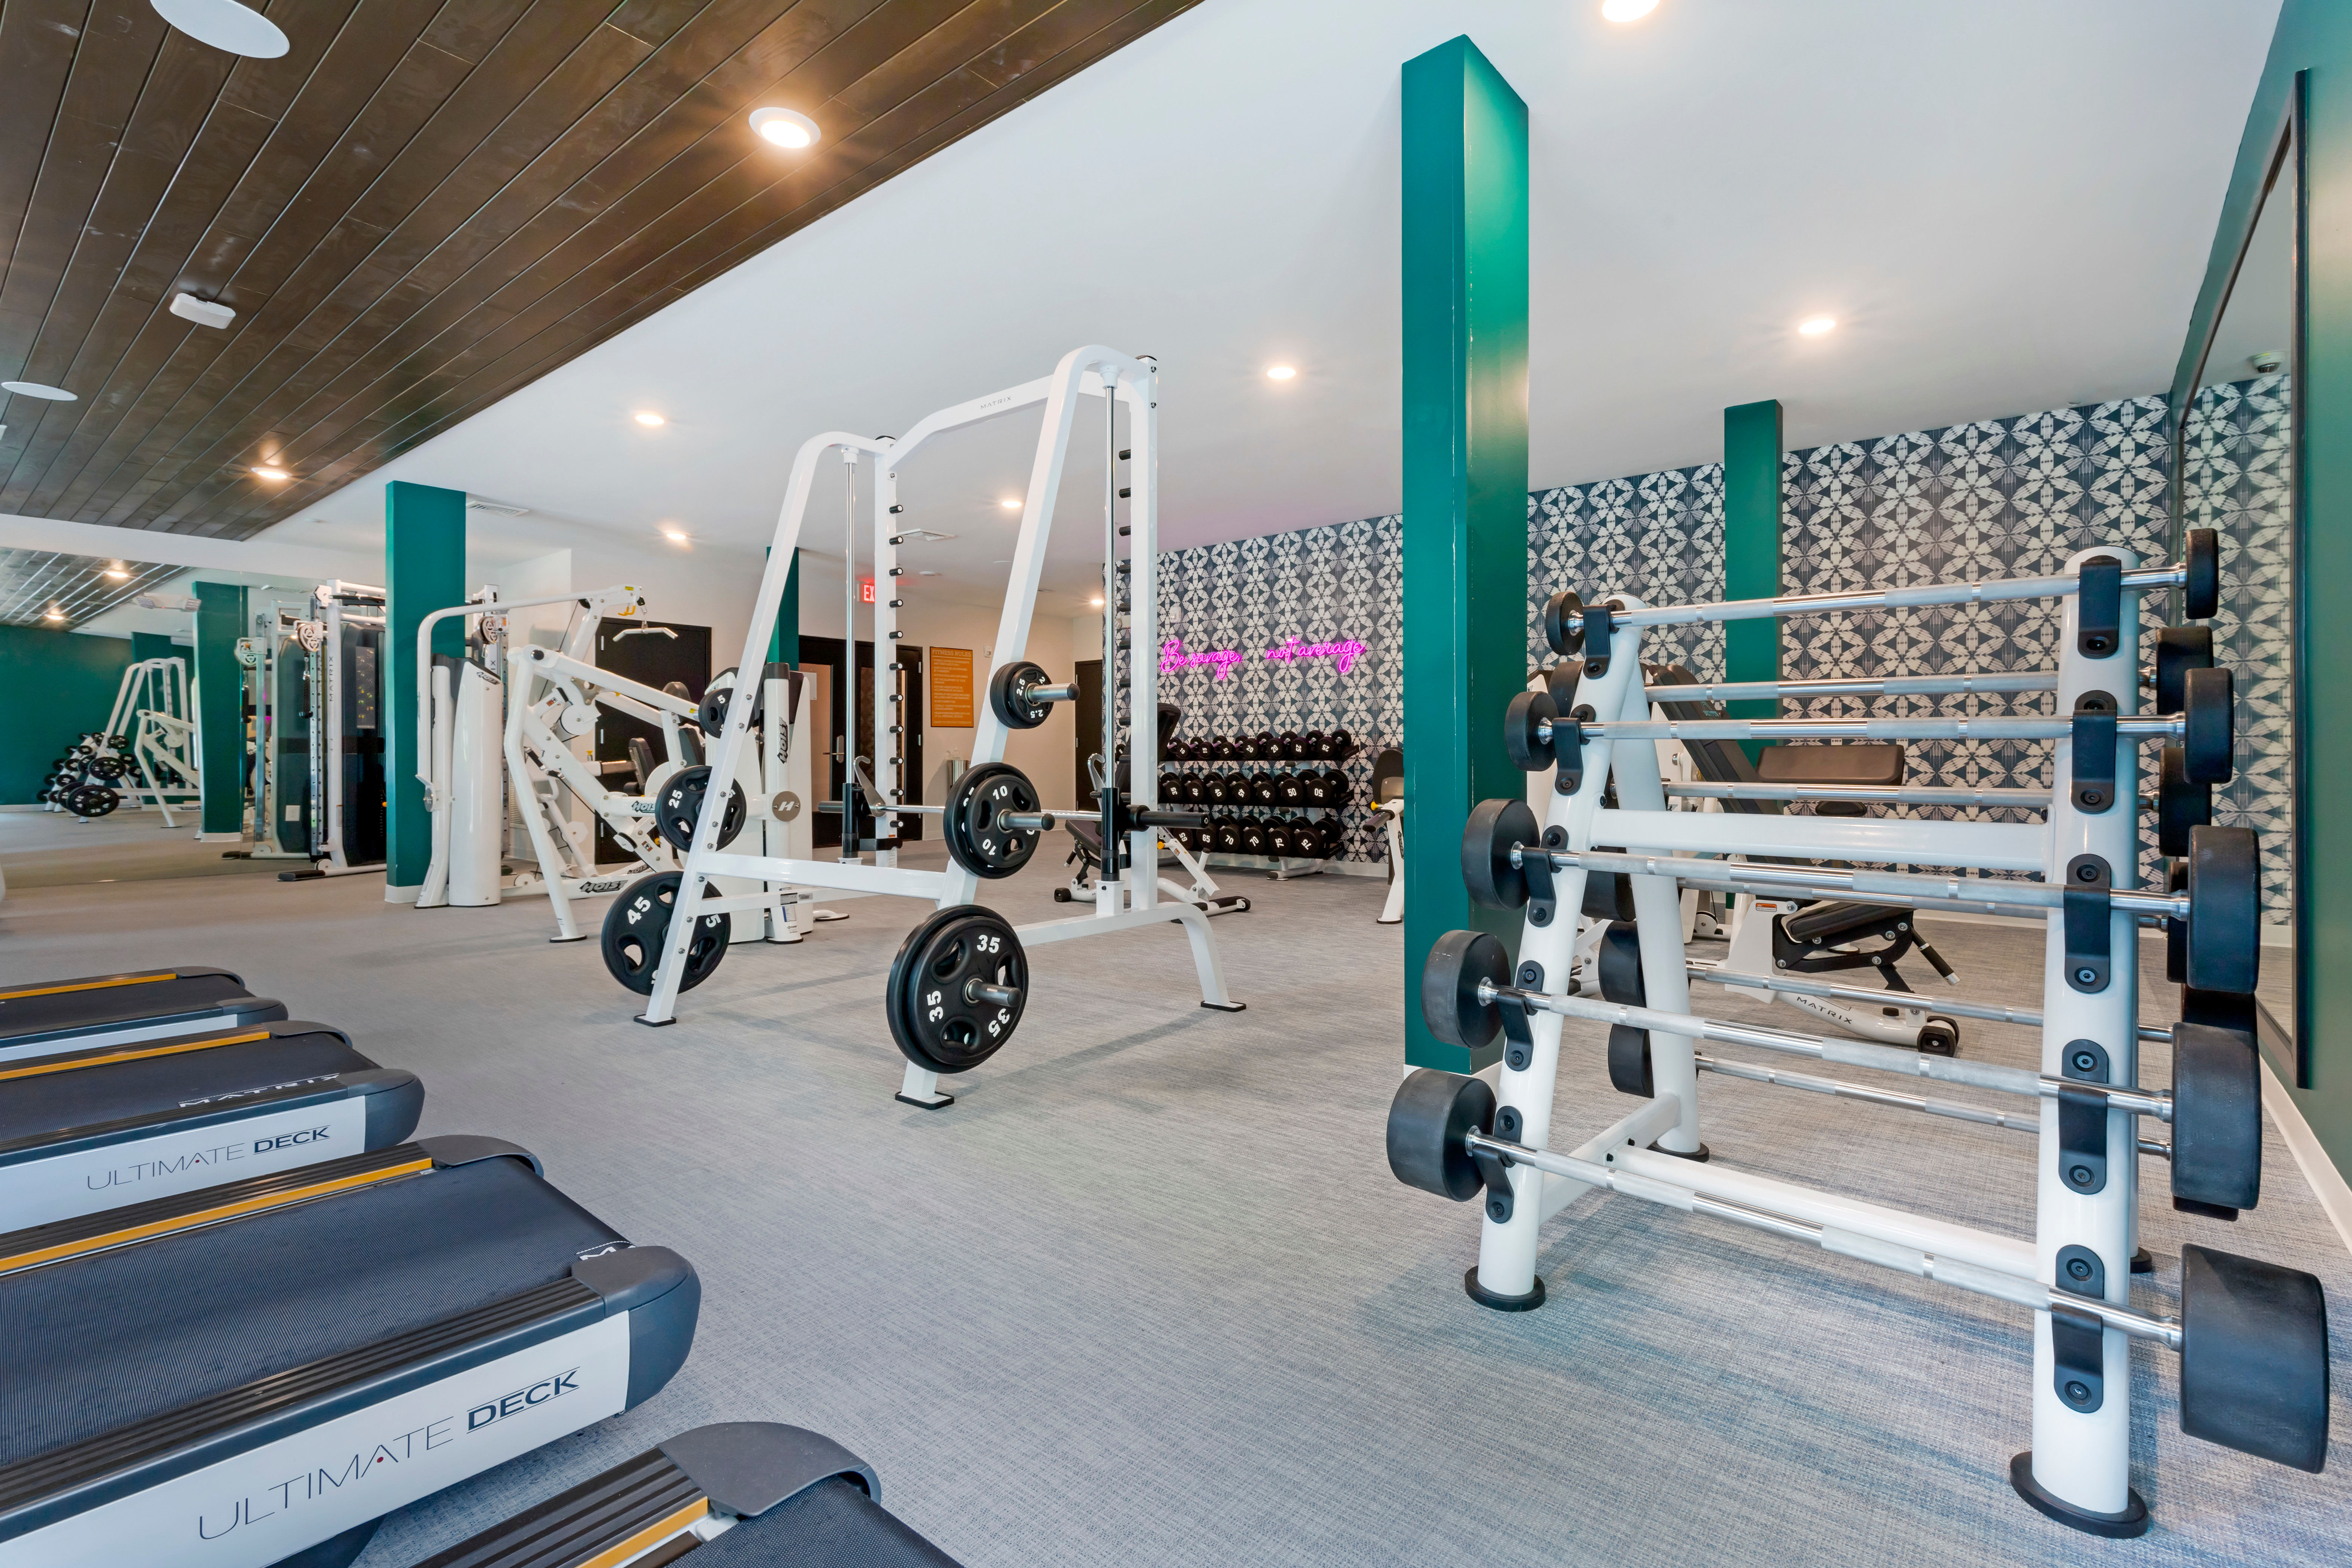 Fully equipped fitness center at UNCOMMON Raleigh in Raleigh, North Carolina